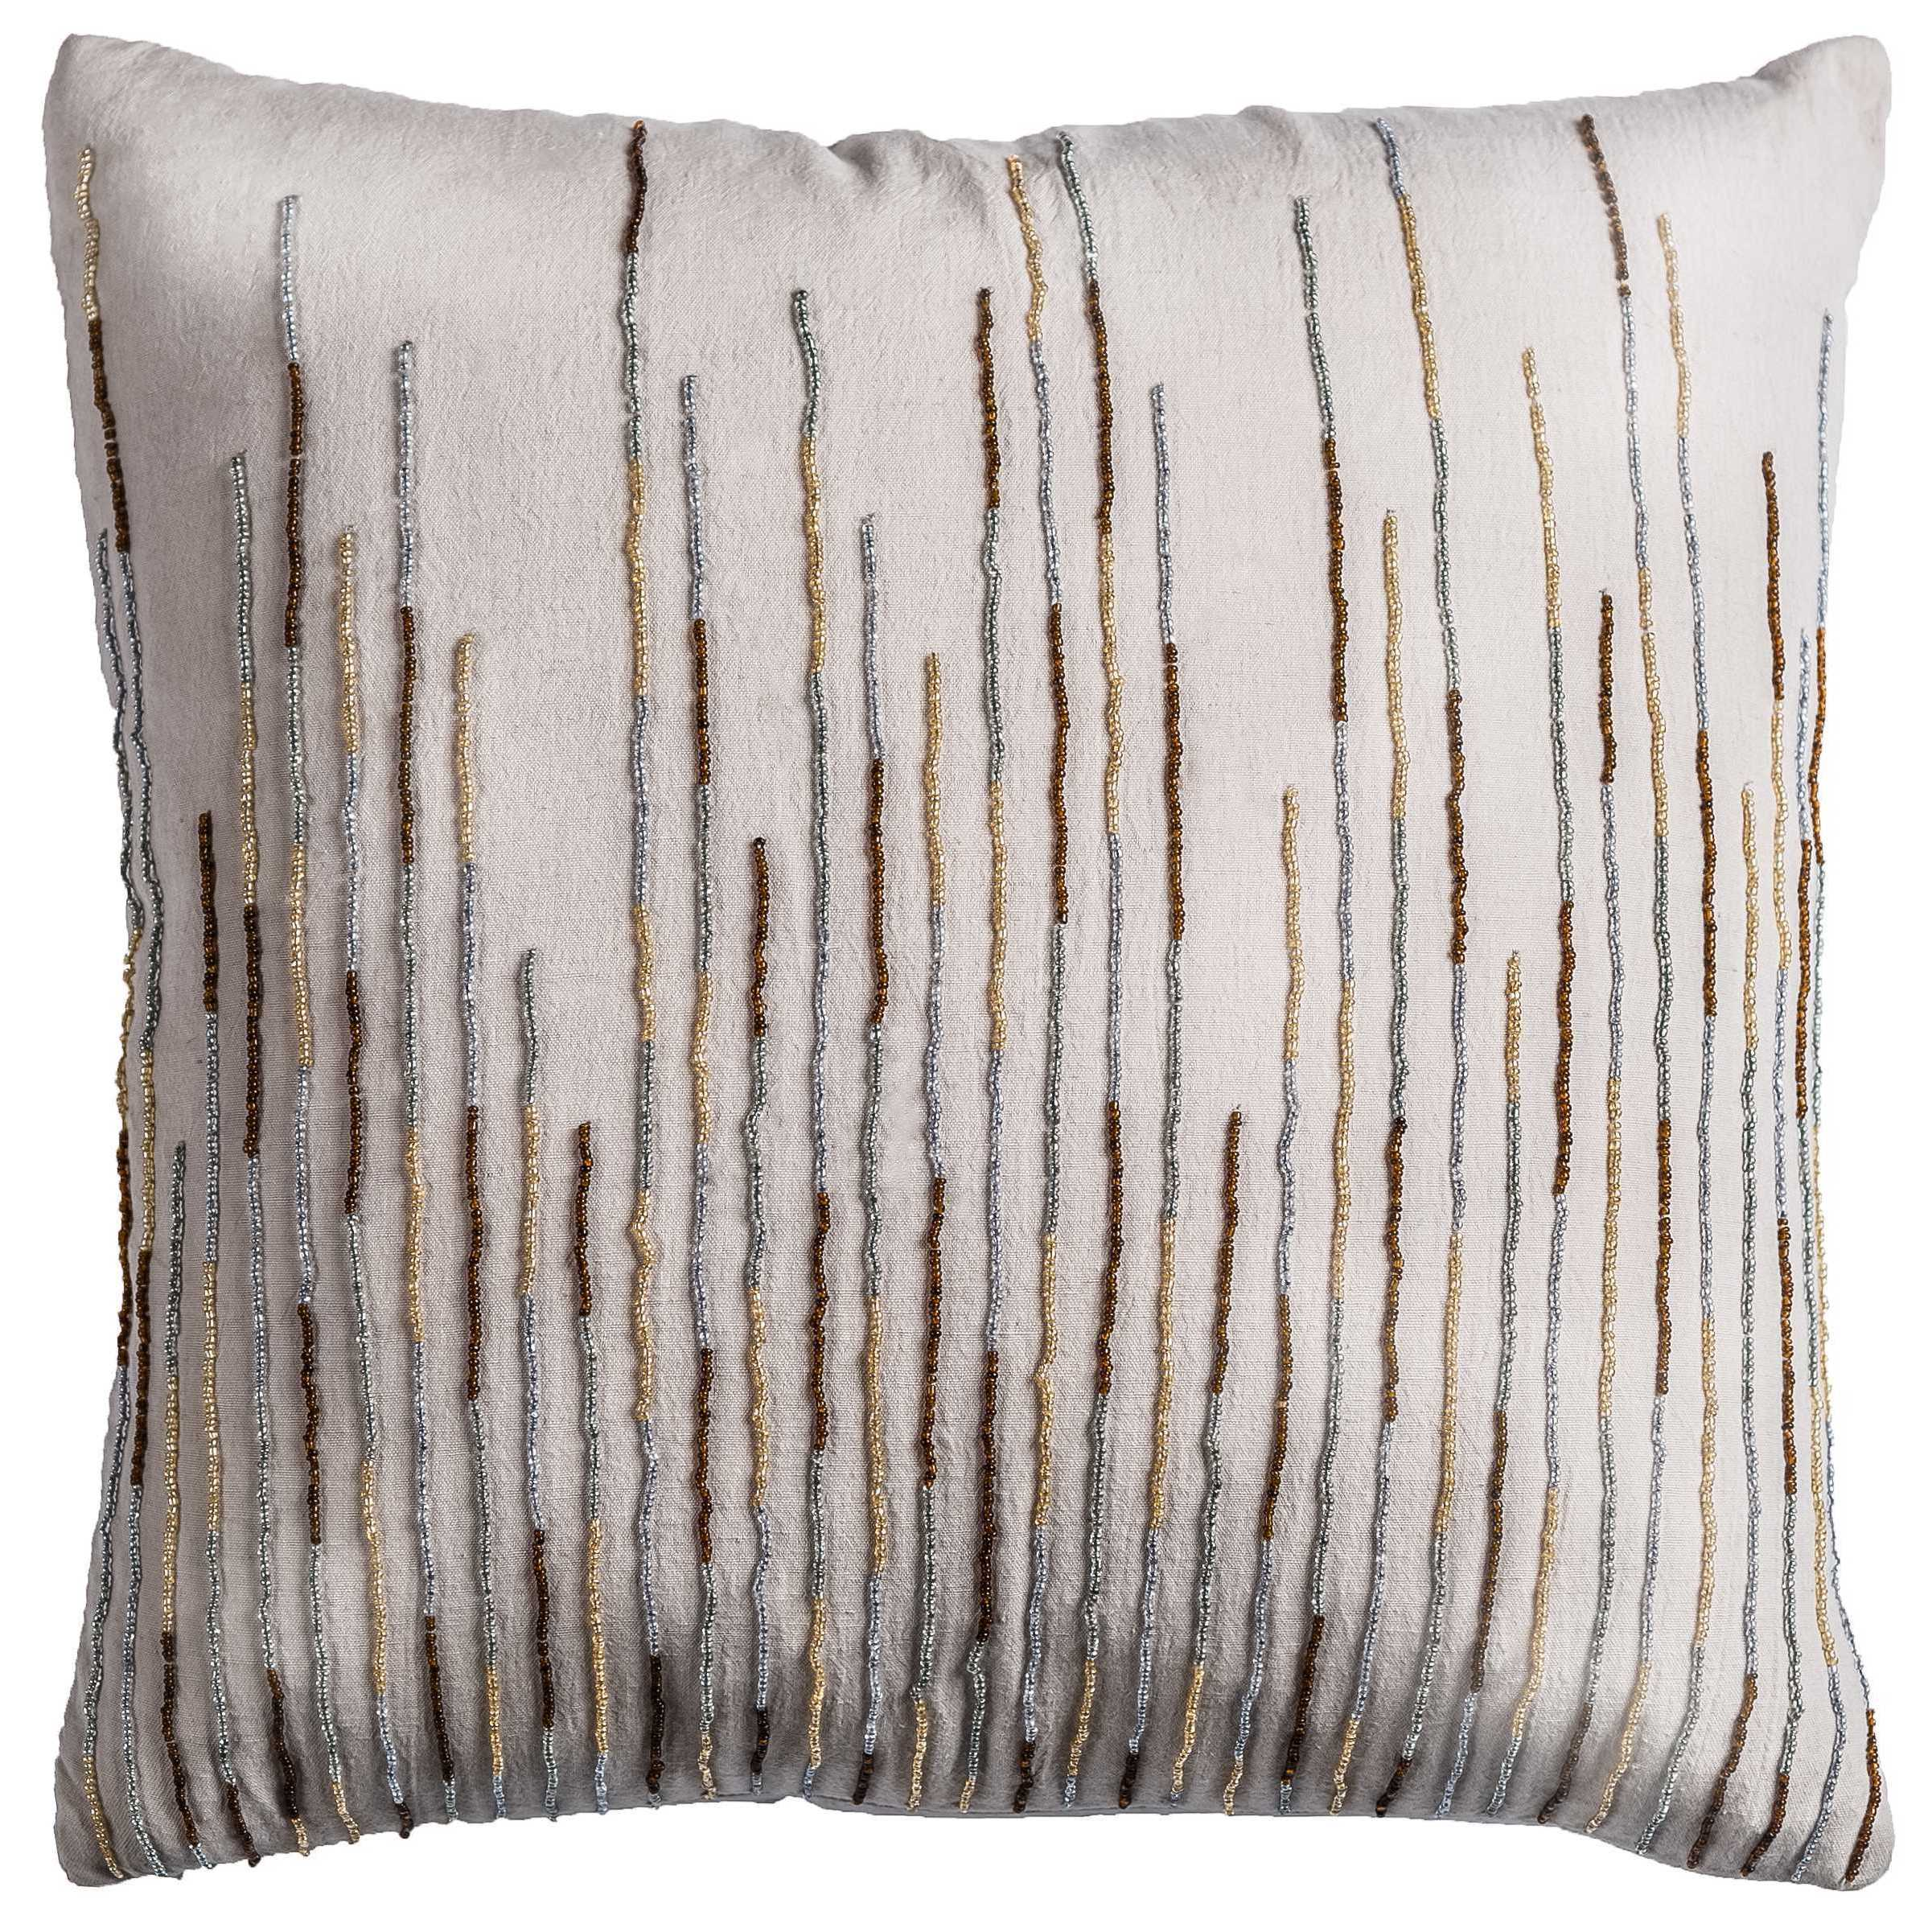 Rizzy Home Off White Cotton Decorative Throw Pillow 18 X 18 Overstock 14309526